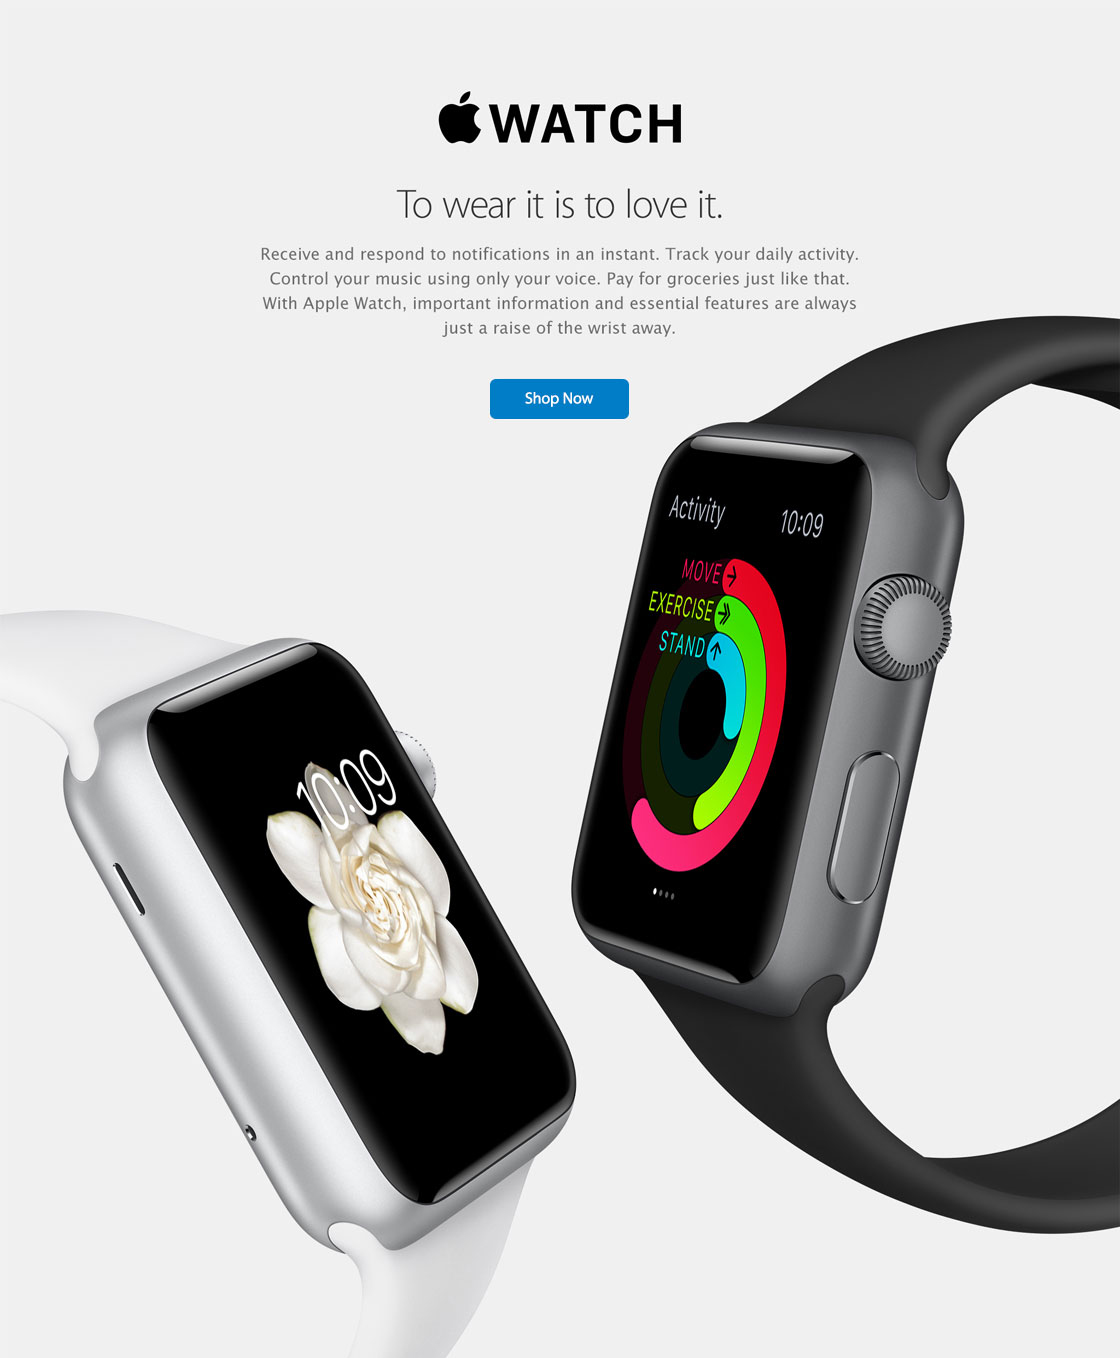 The Apple Watch Sport is now available through Walmart online